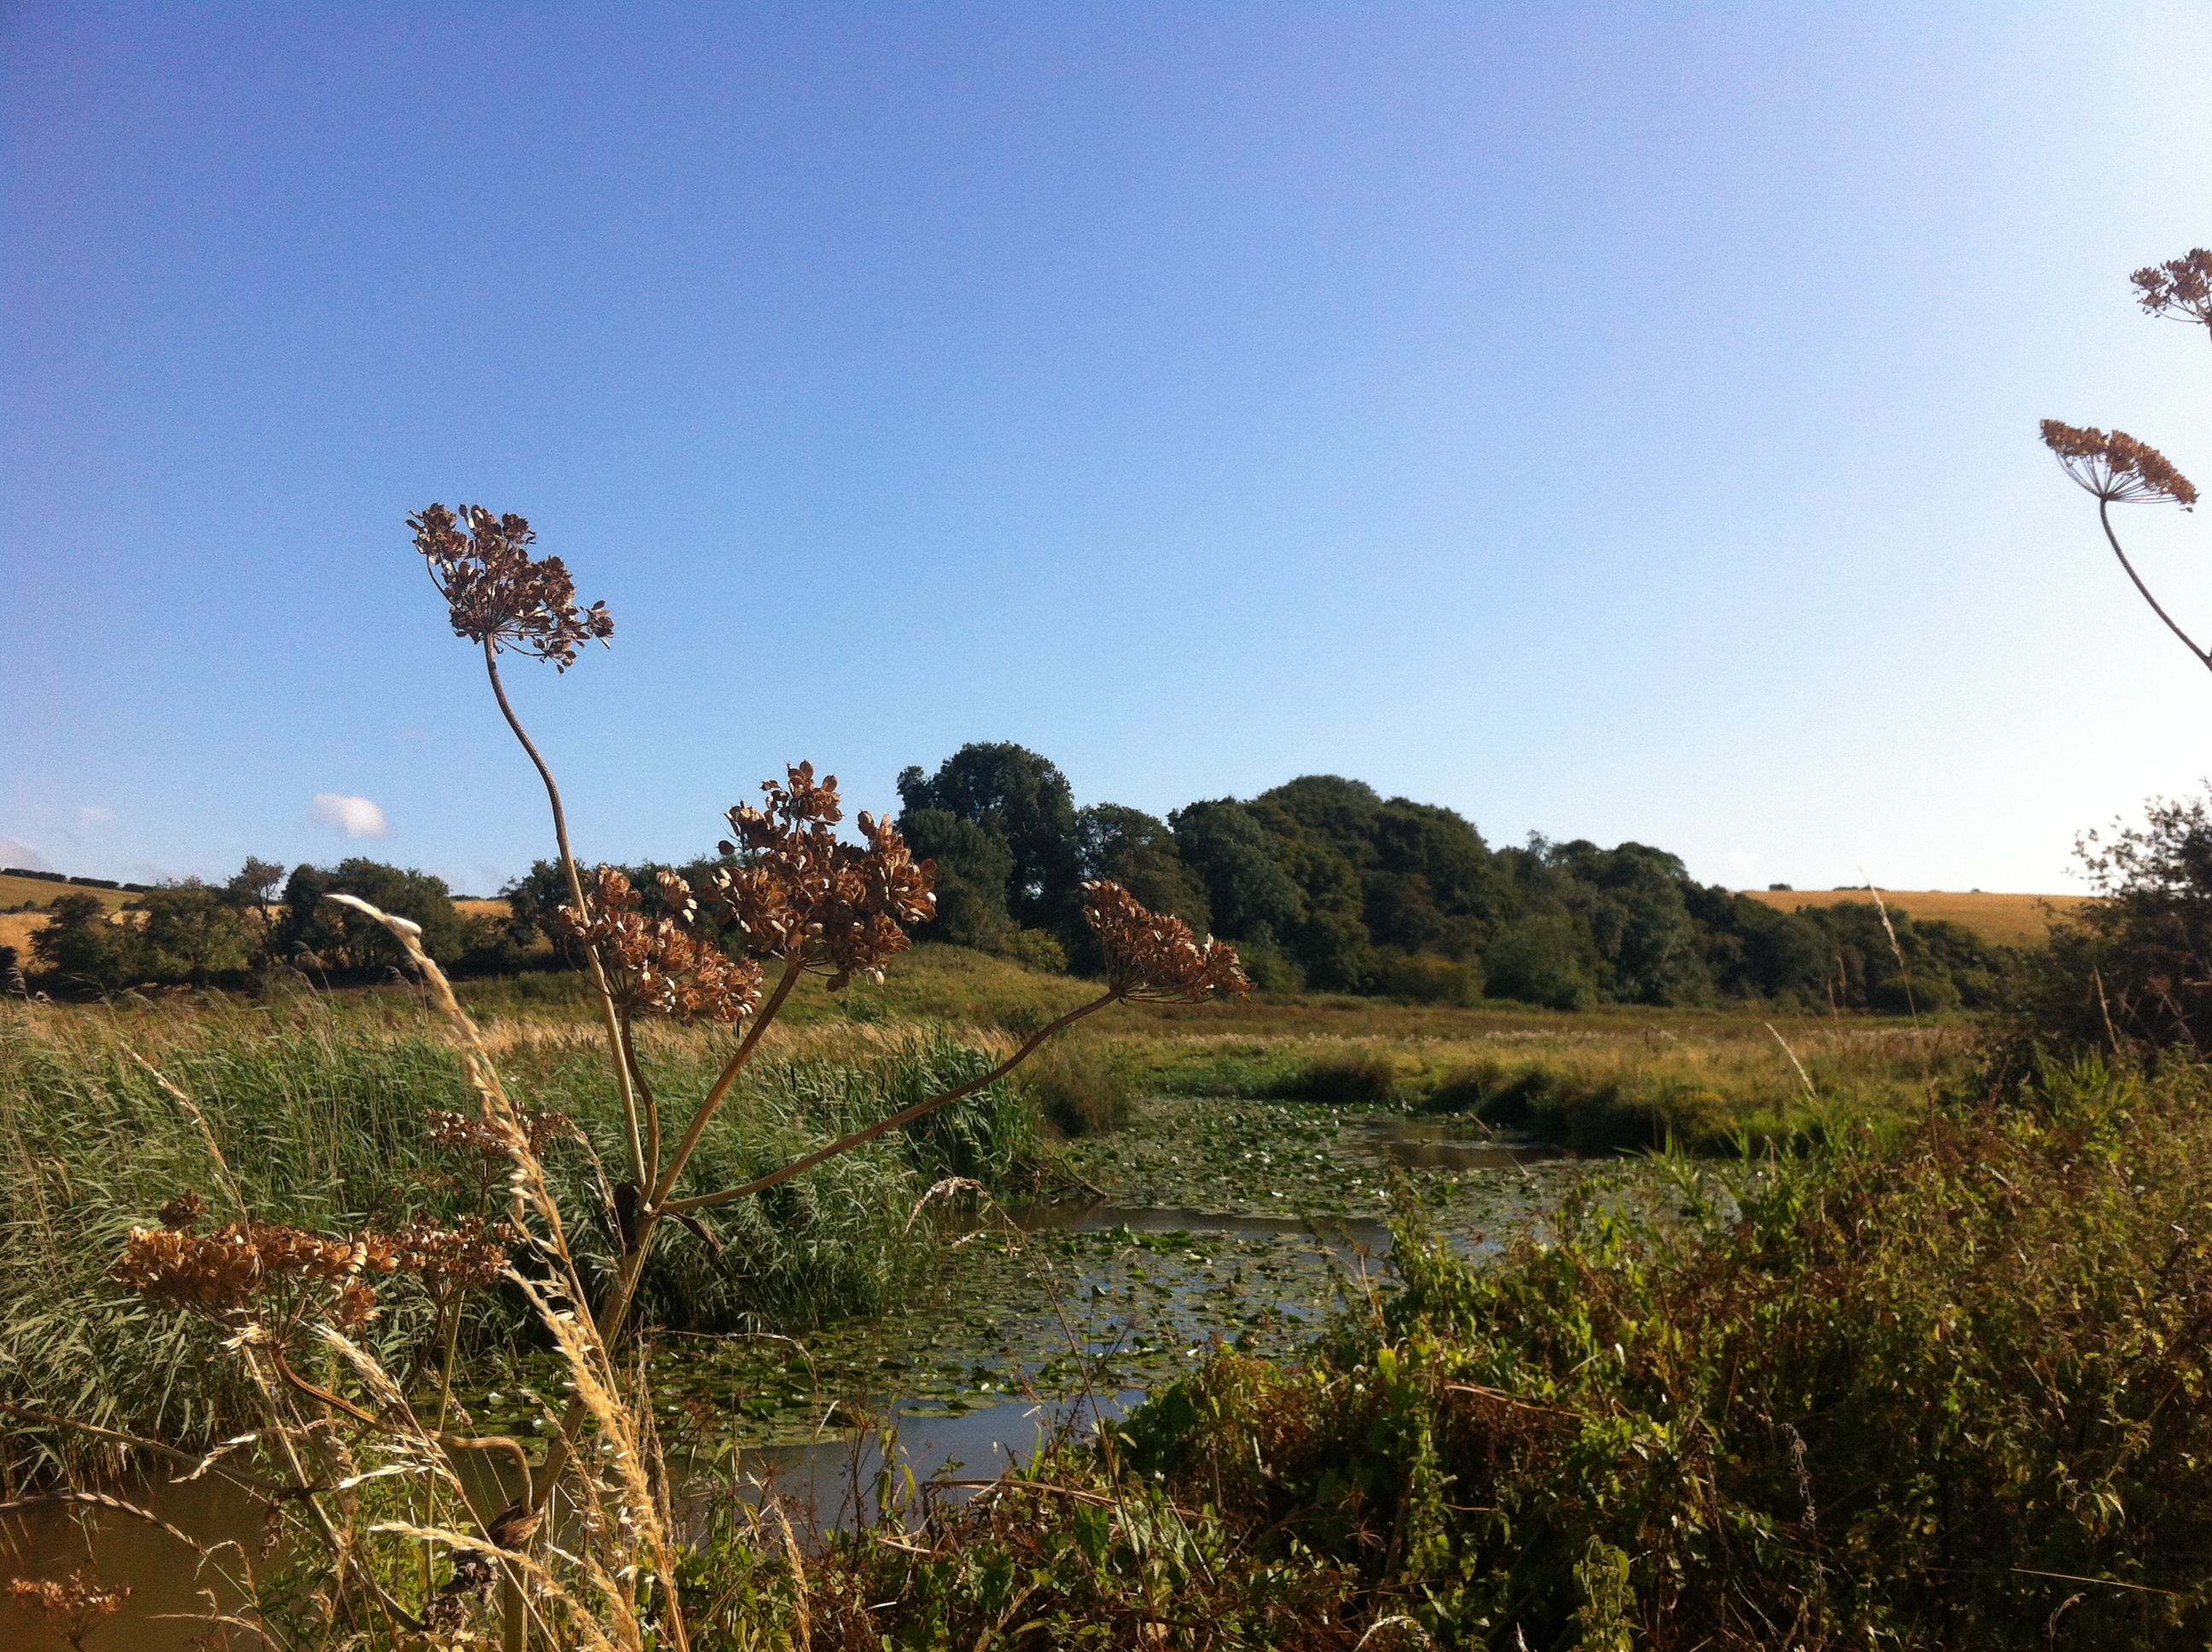 Brading Marshes Nature Reserve